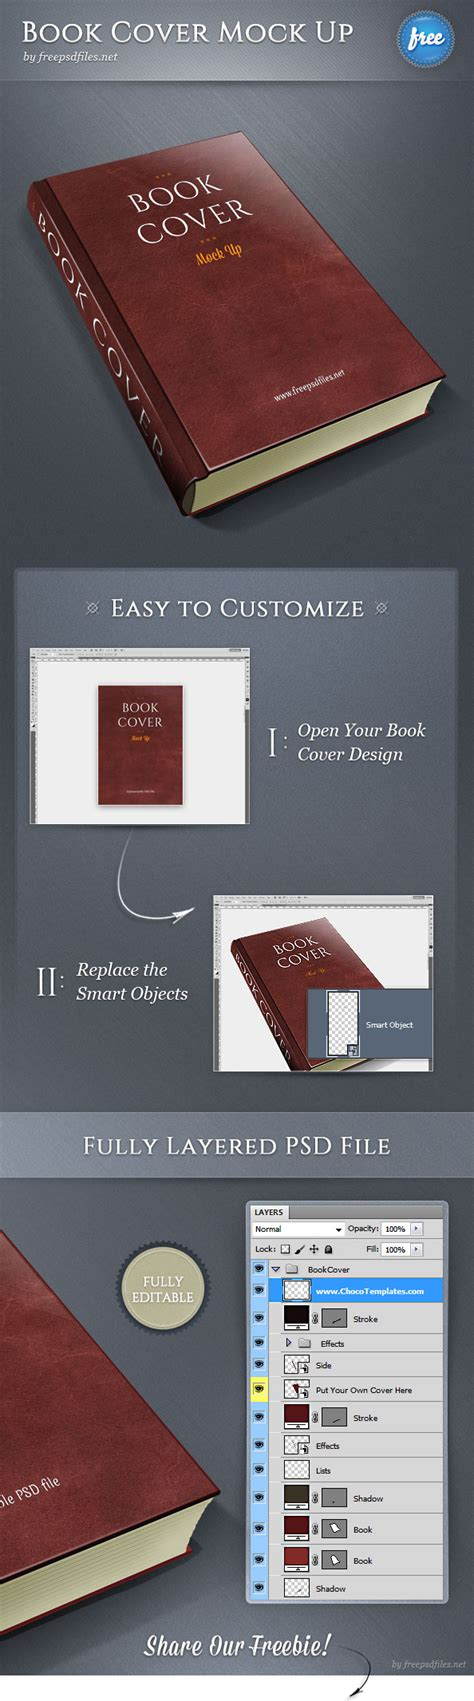 psd book cover mockup template free book cover psd mockup free psd files